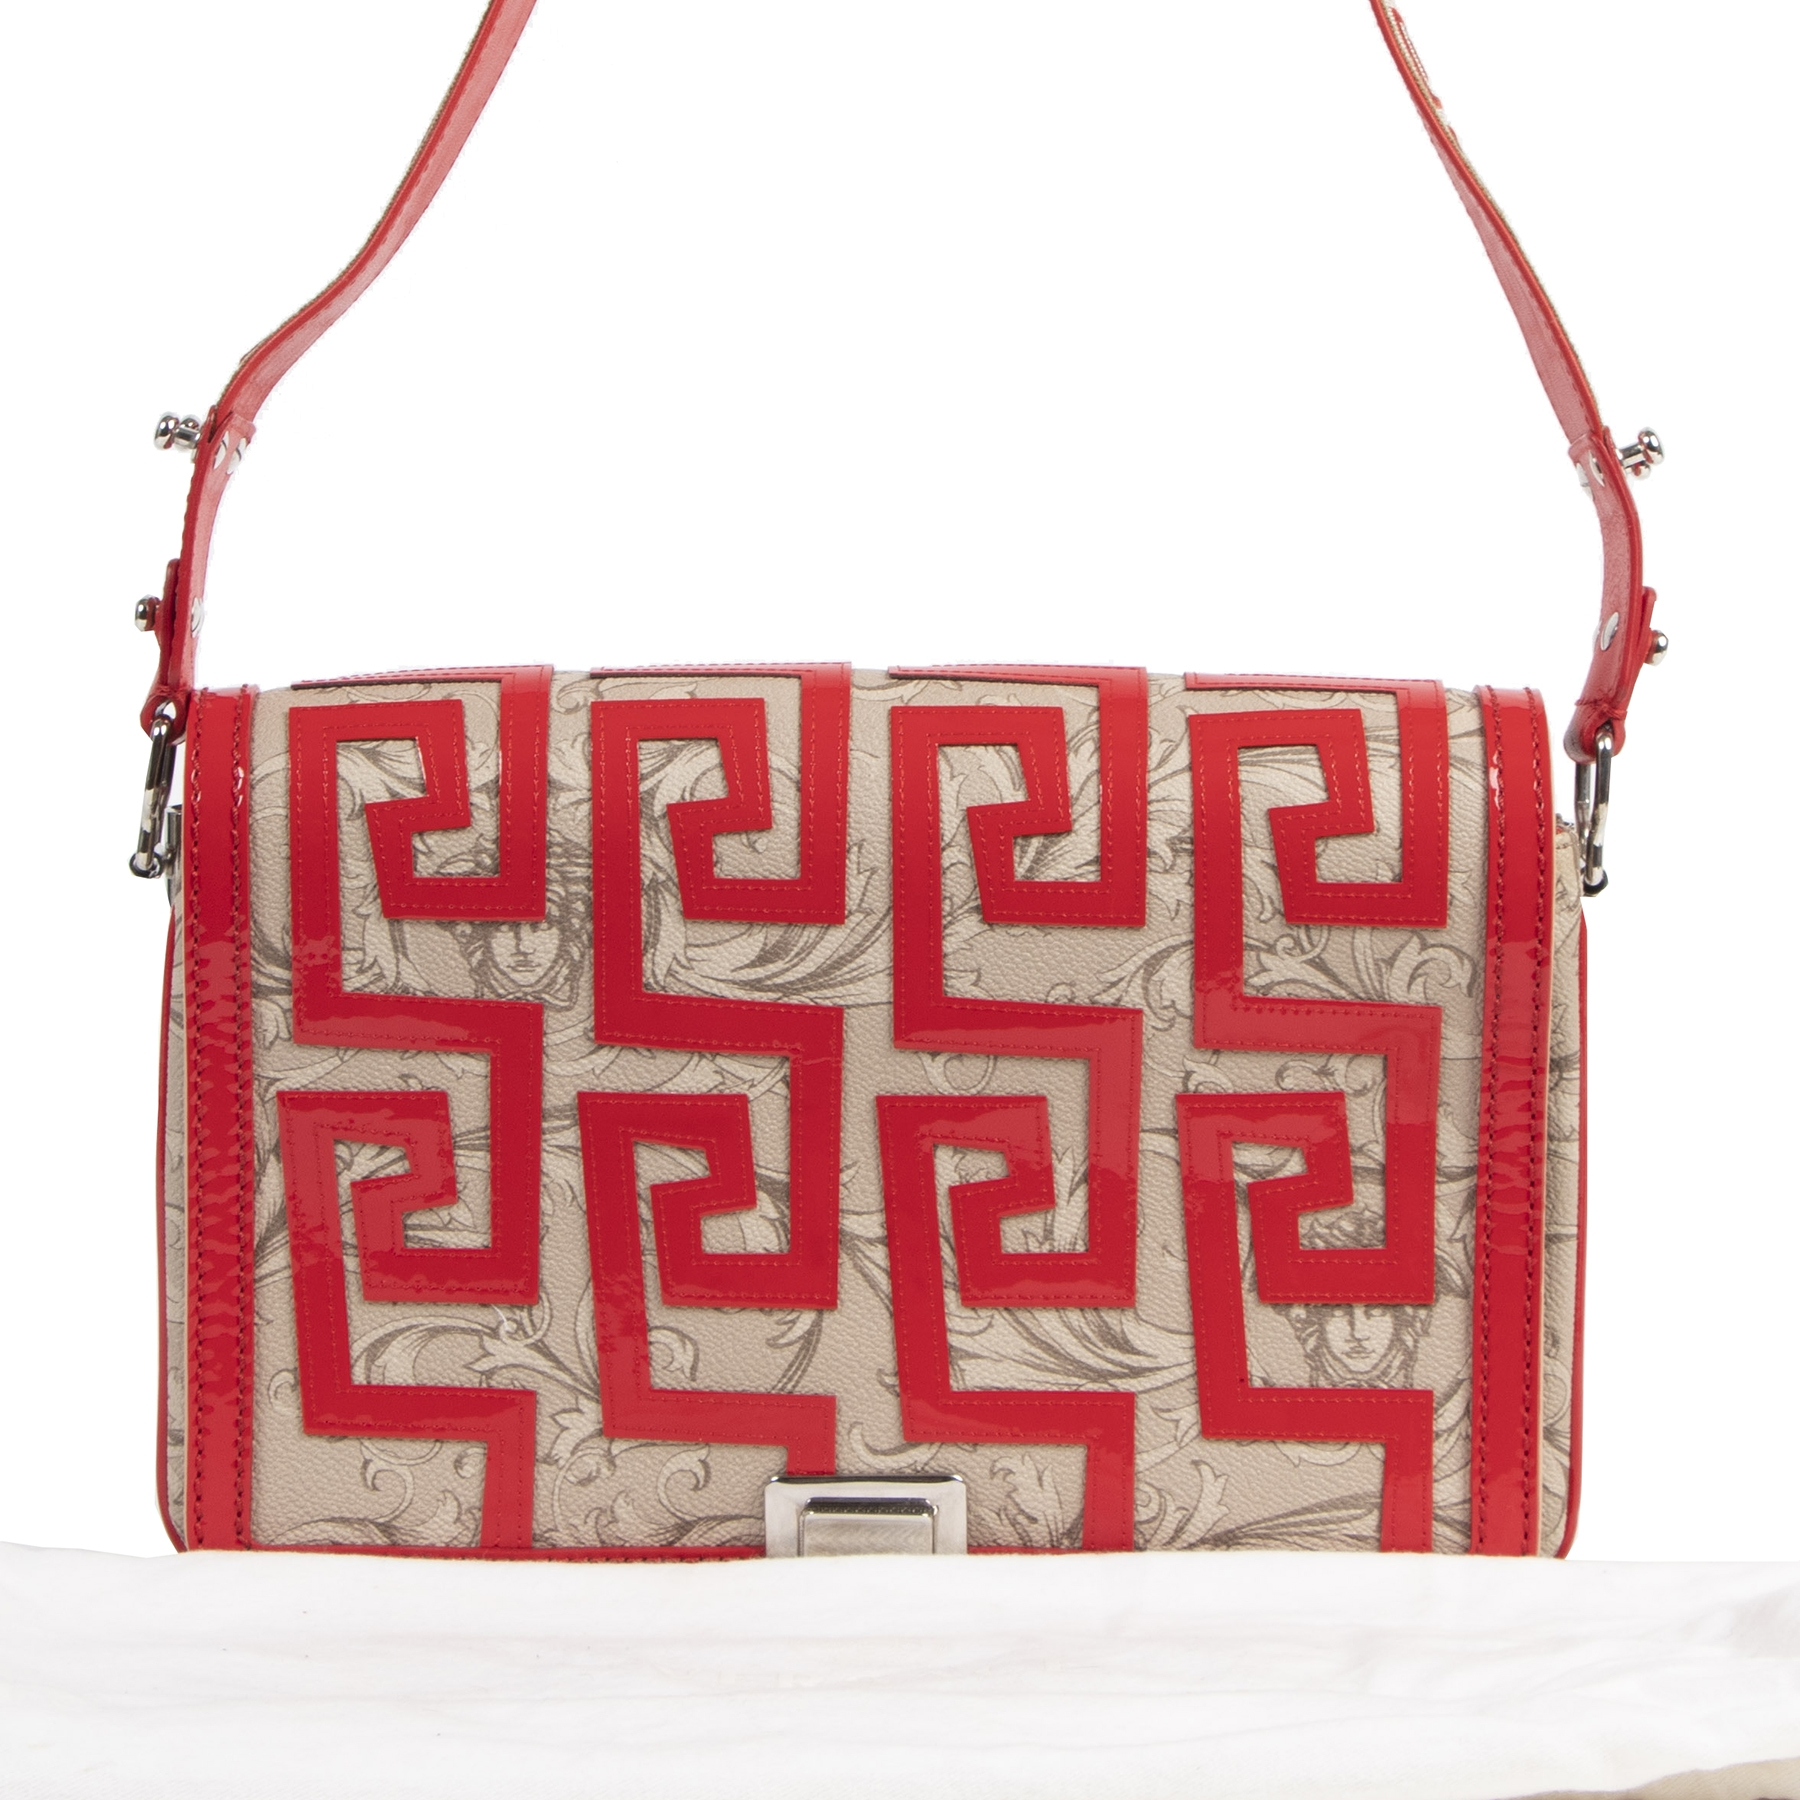 Authentieke tweedehands vintage Versace Red Baroque Print Shoulder Bag bij online webshop LabelLOV